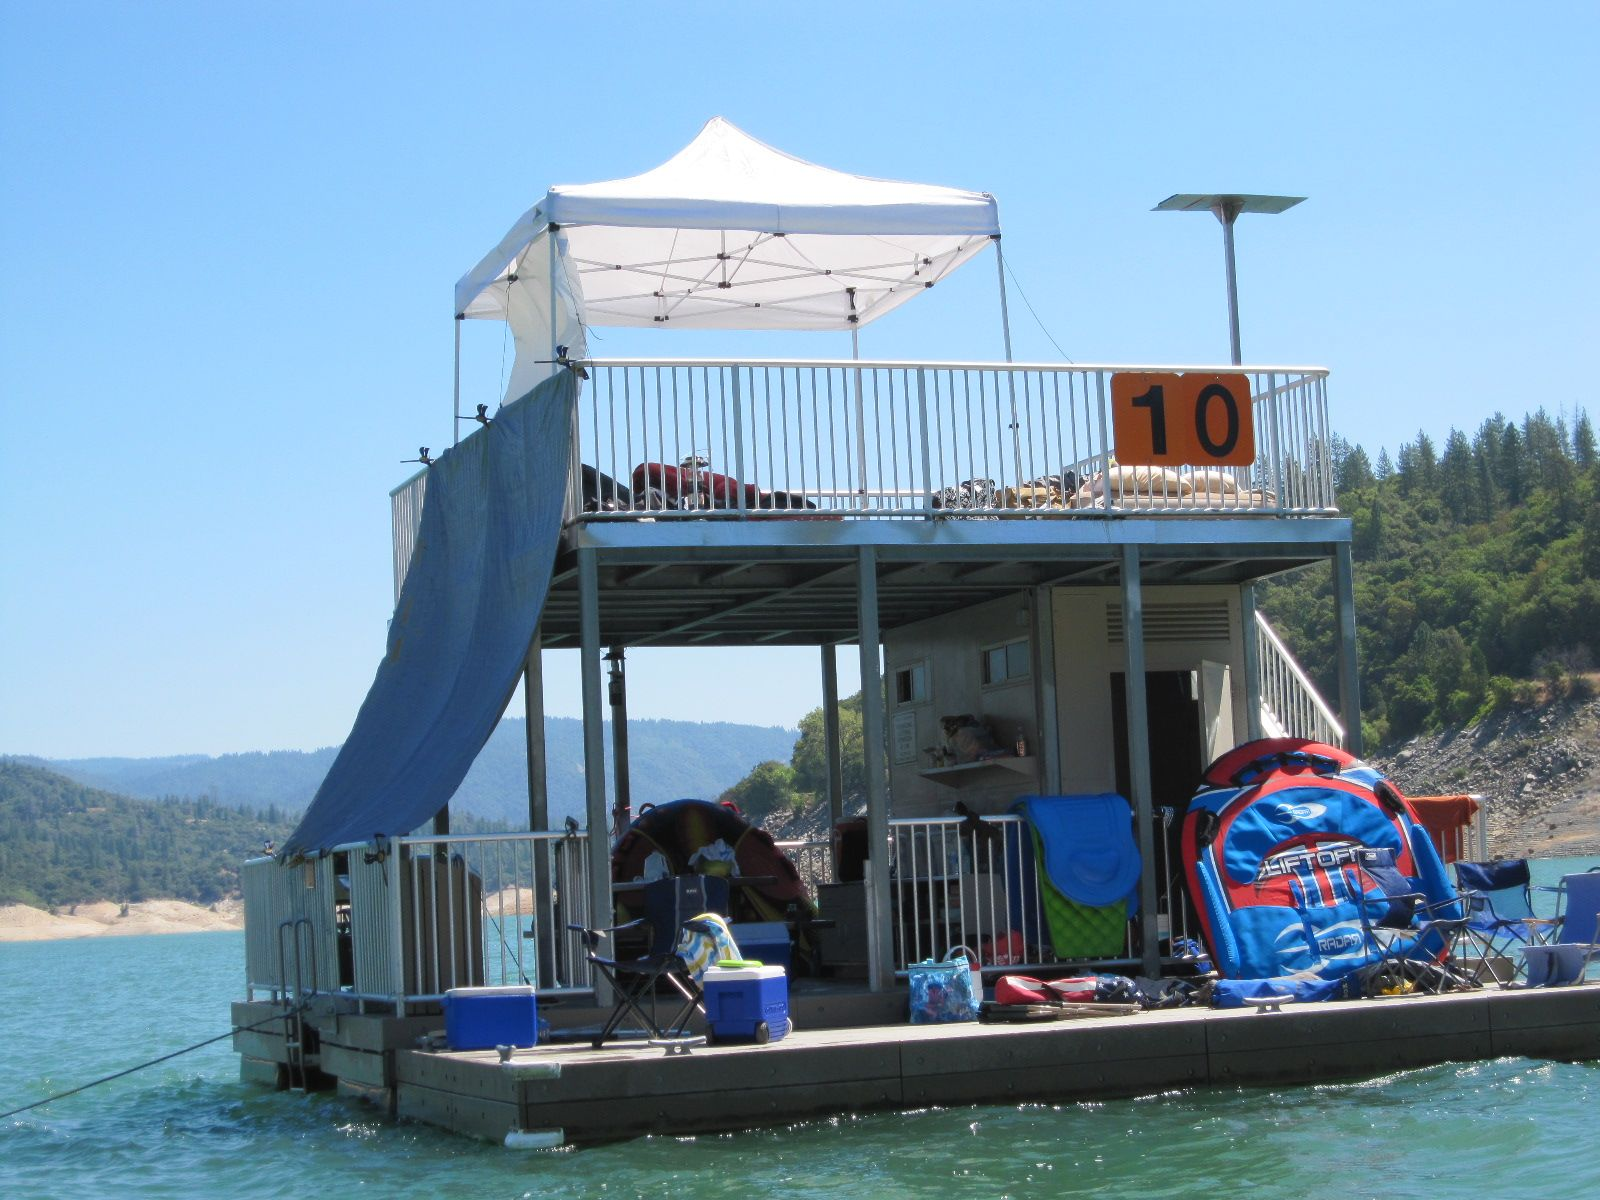 lake oroville camping map Lake Oroville Ca Floating Campsites California Travel Lake Oroville Oroville lake oroville camping map